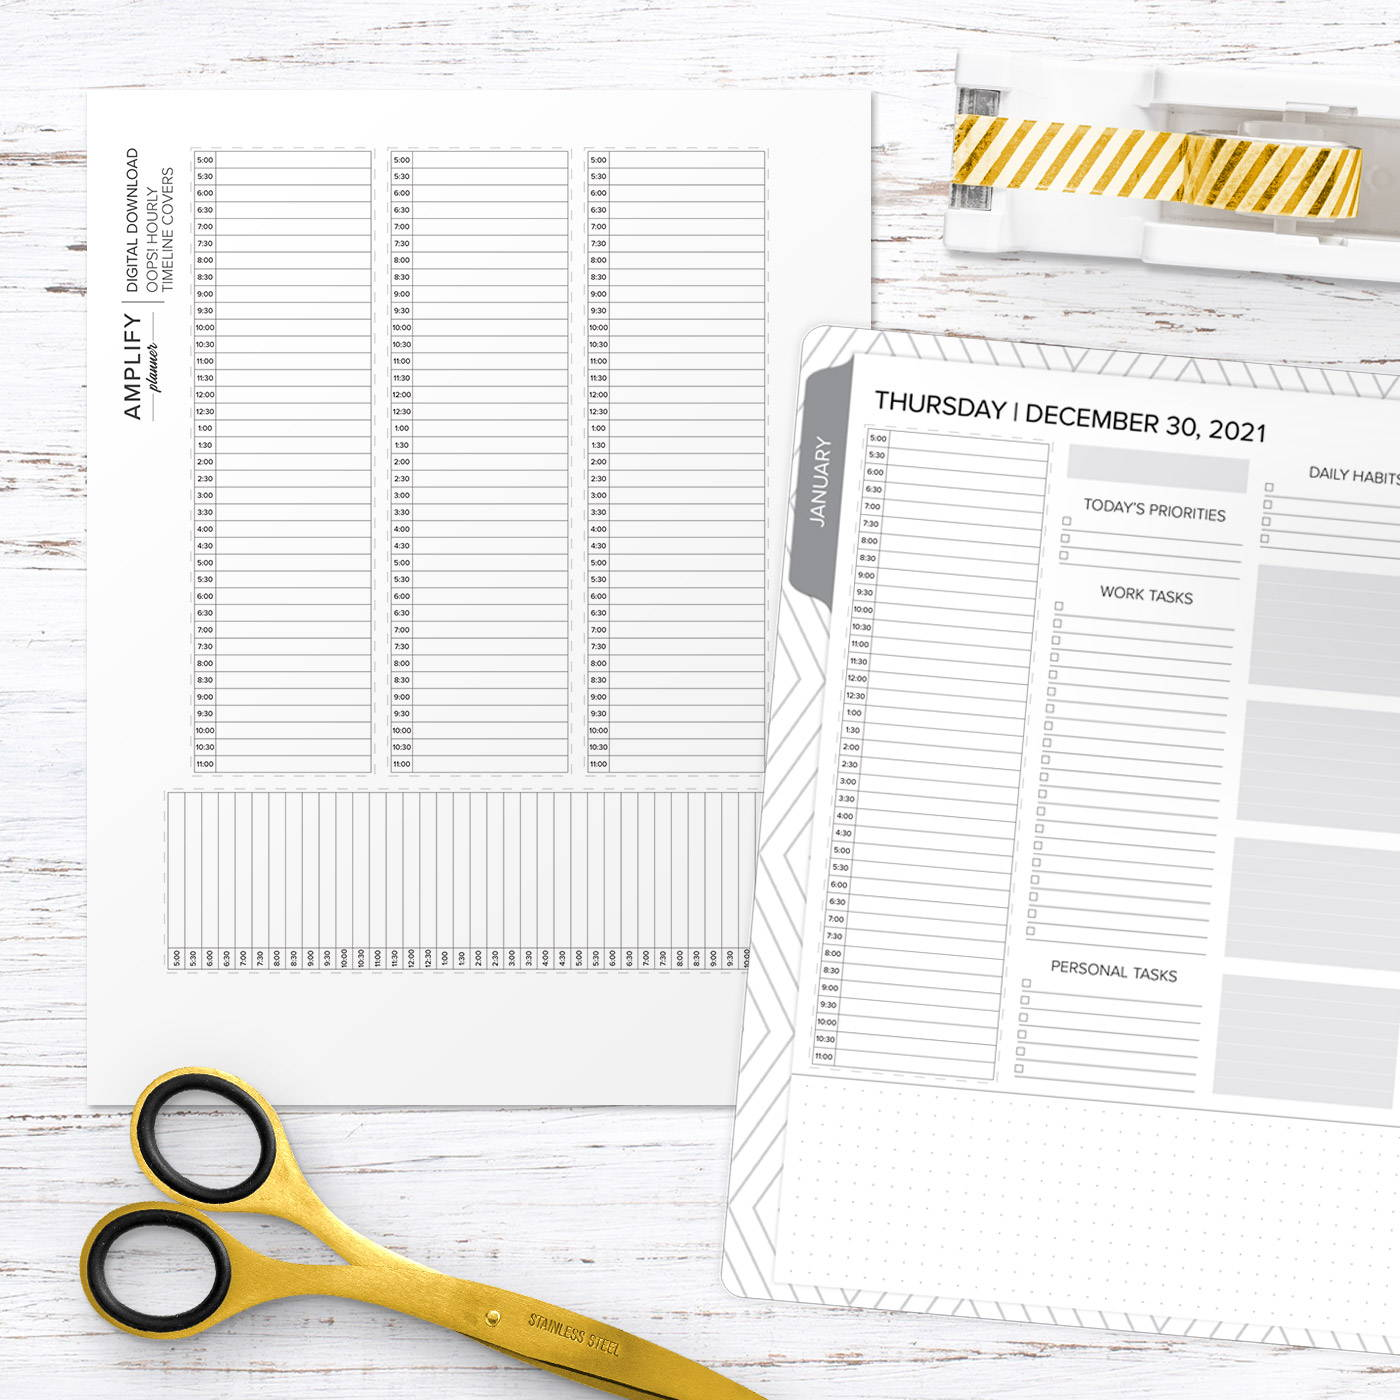 amplify planner hourly timeline cover download